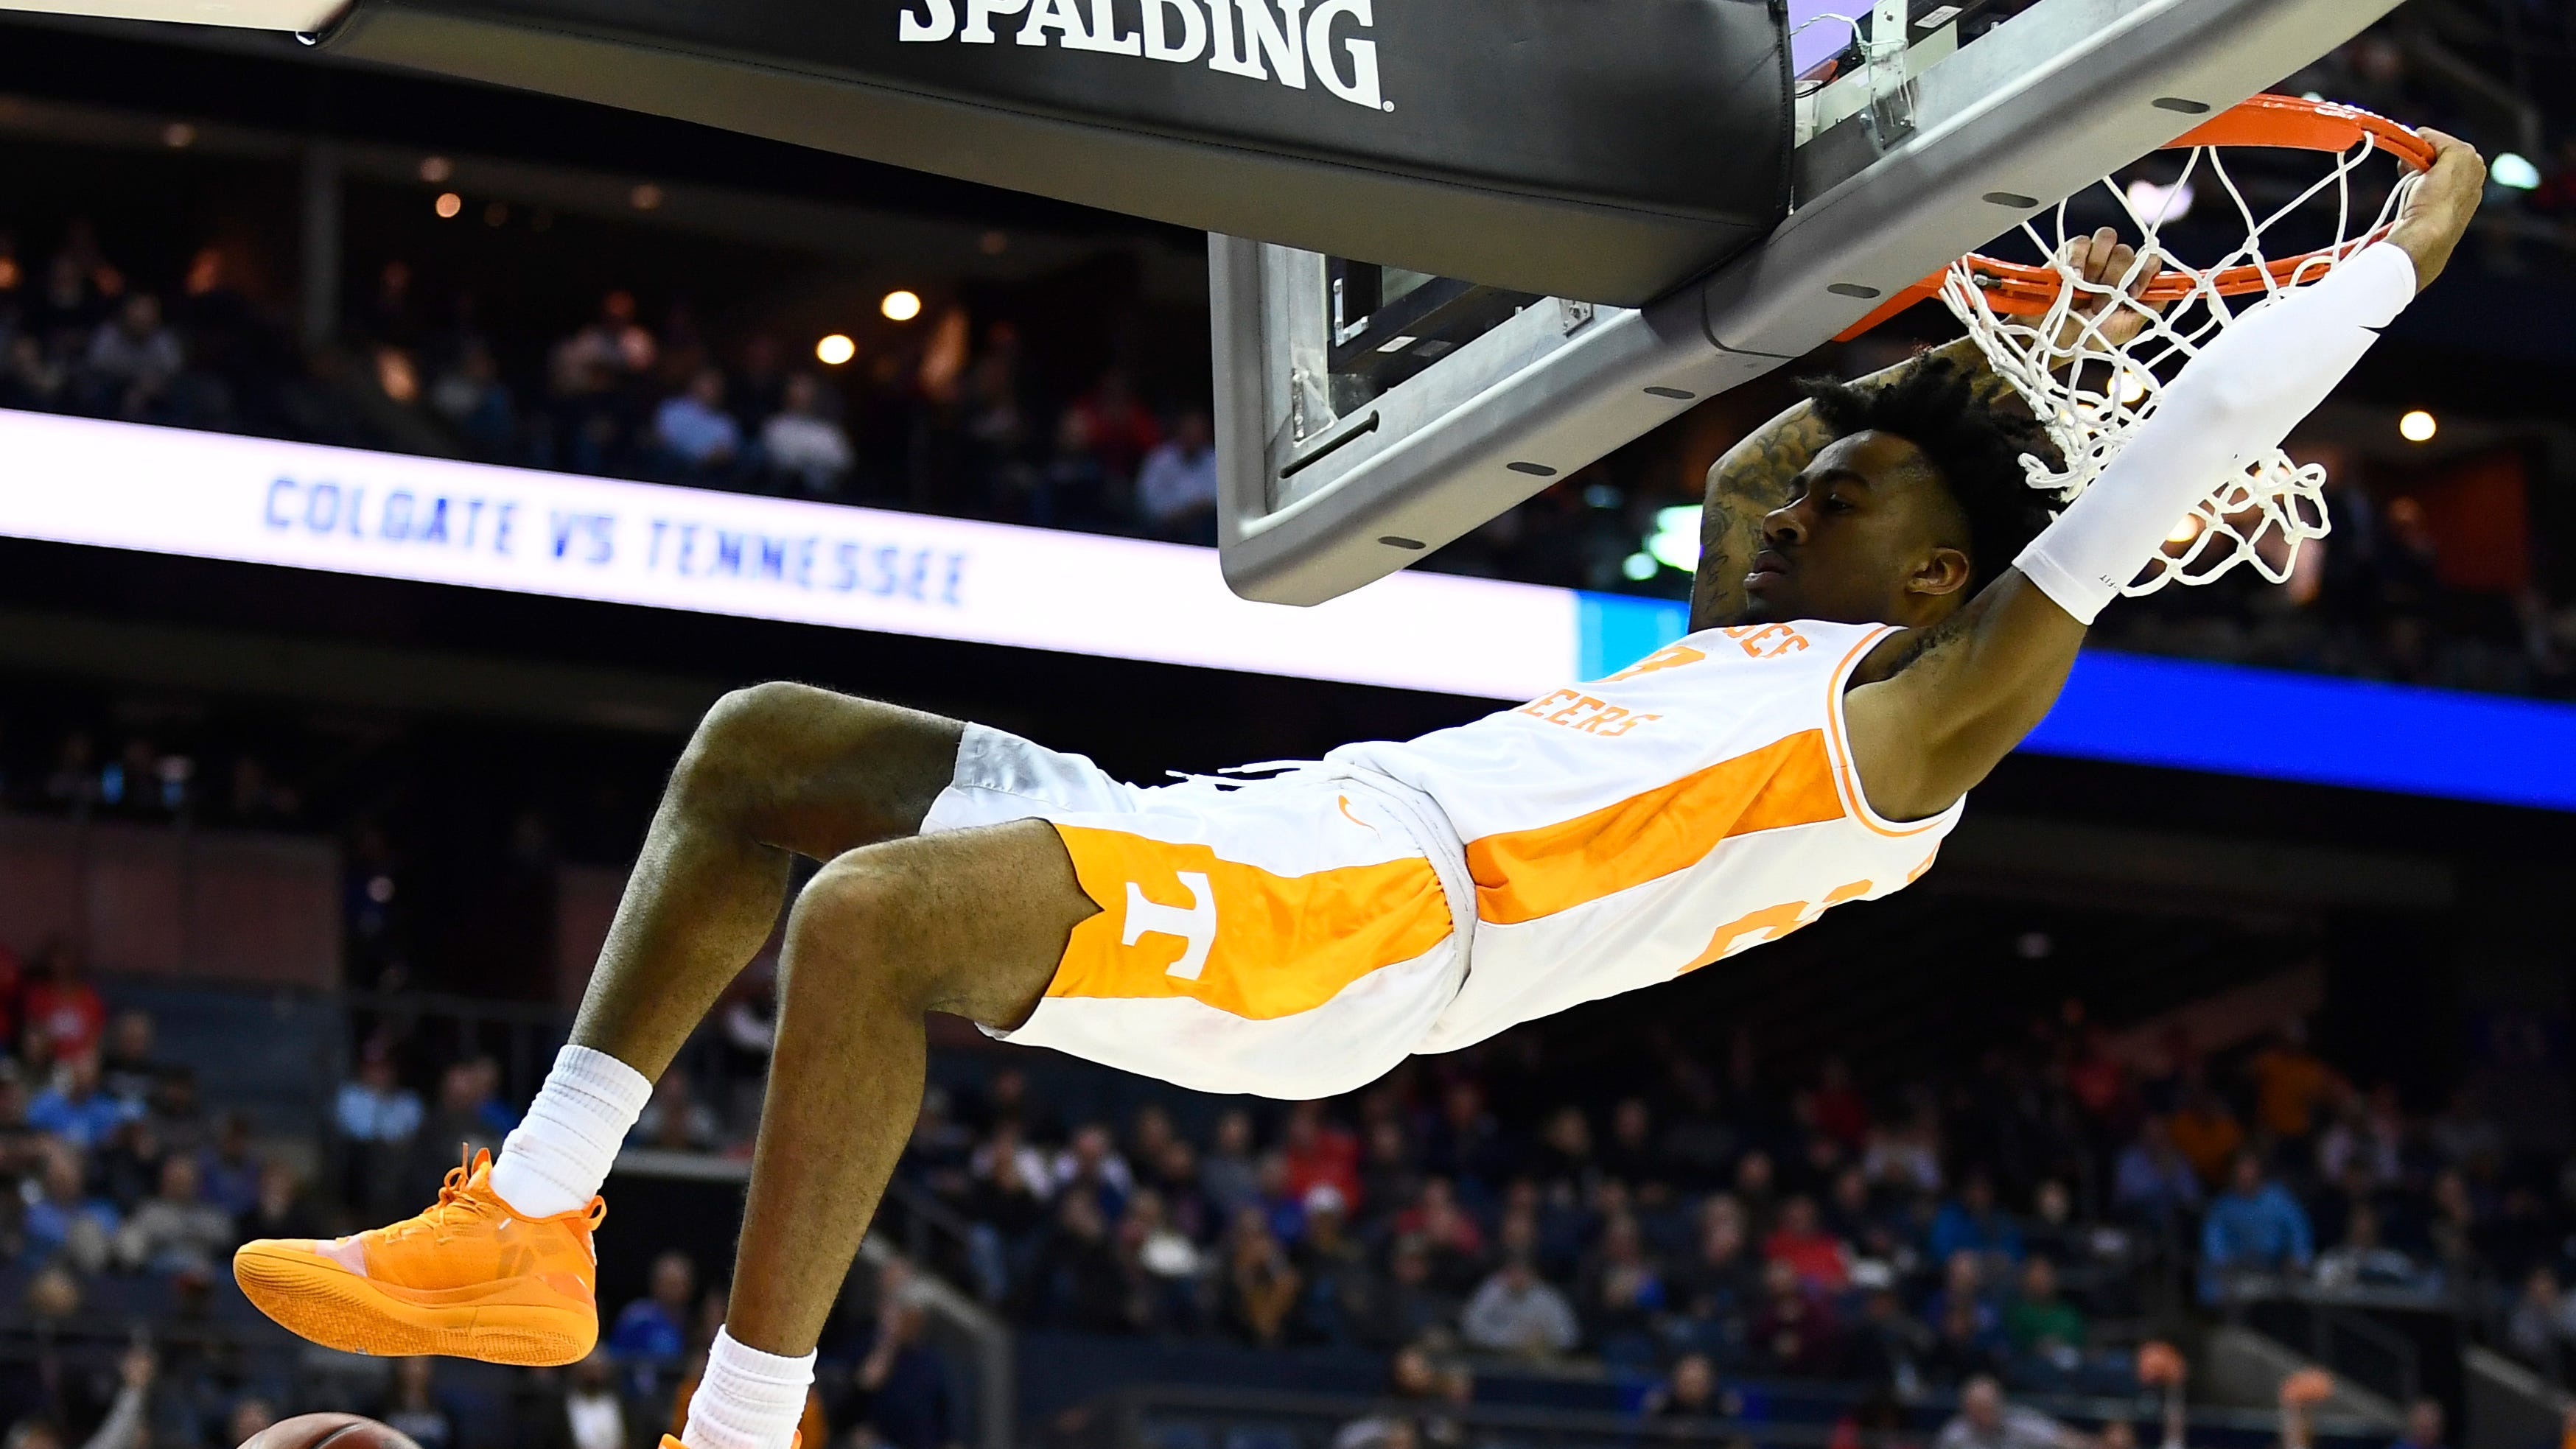 Tennessee basketball win over Colgate was pretty because that's true of every NCAA win